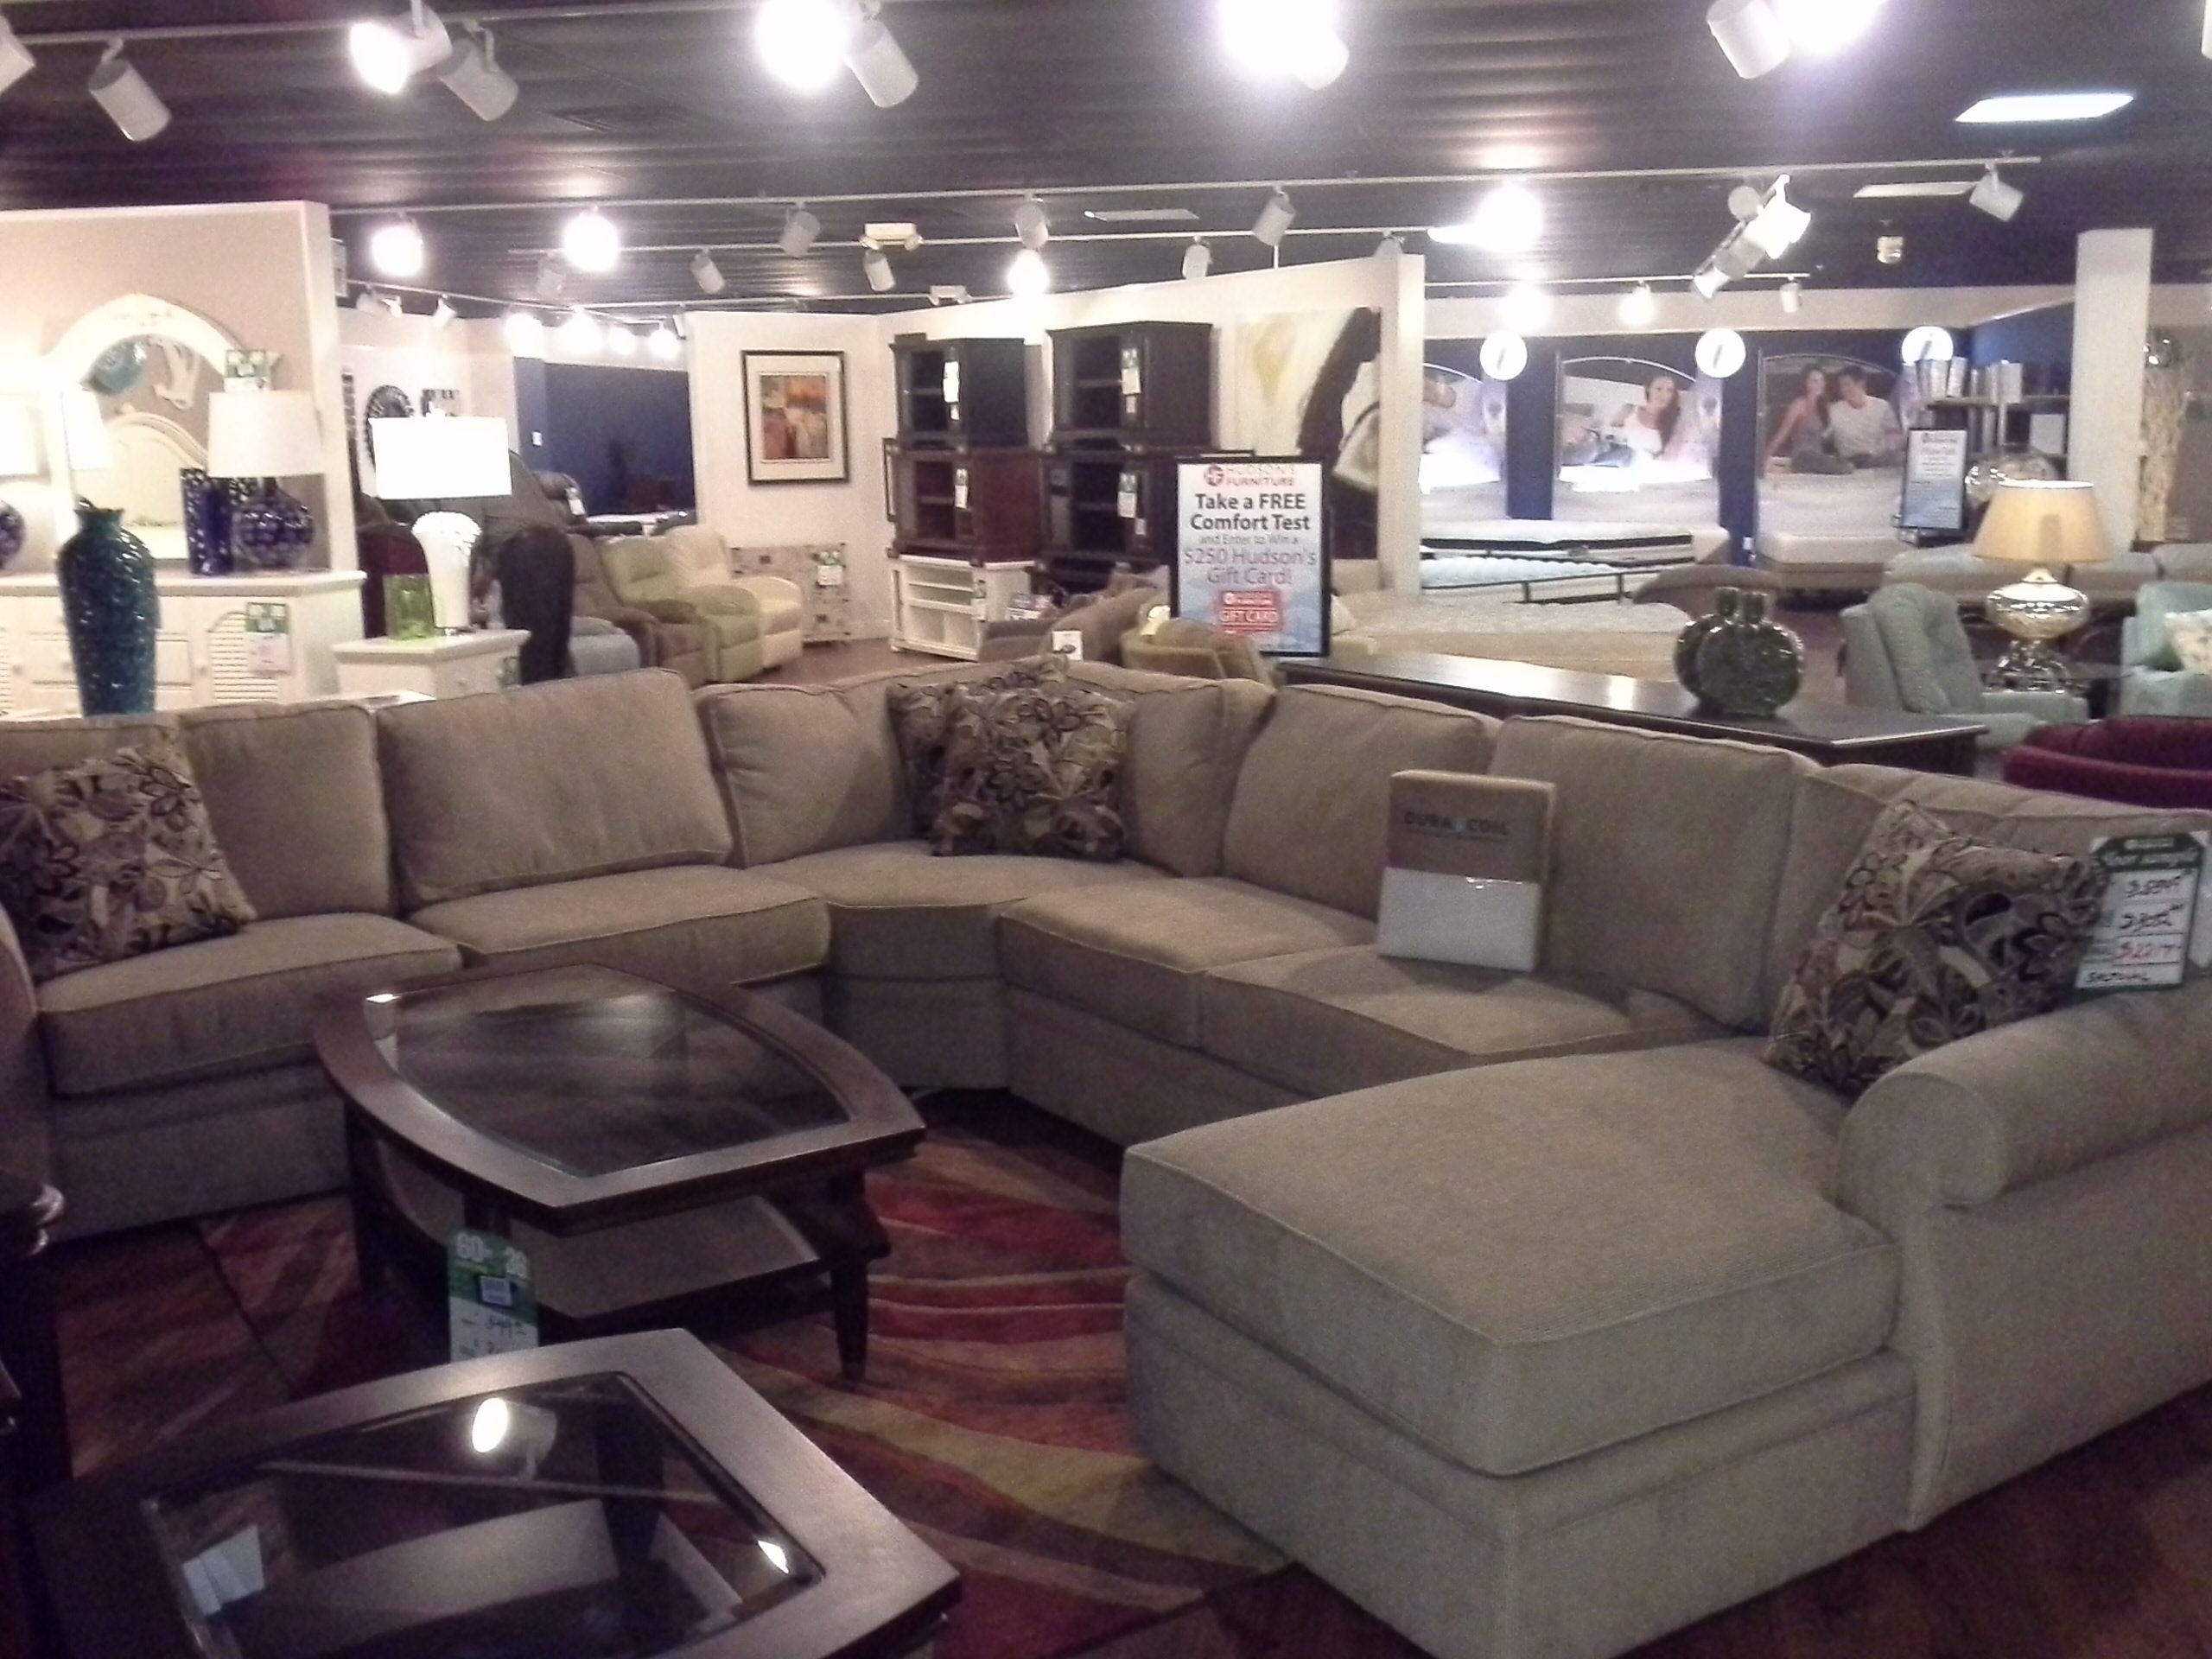 Broyhill Sectional | Home Decor | Pinterest | House intended for Sectional Sofas at Broyhill (Image 11 of 15)